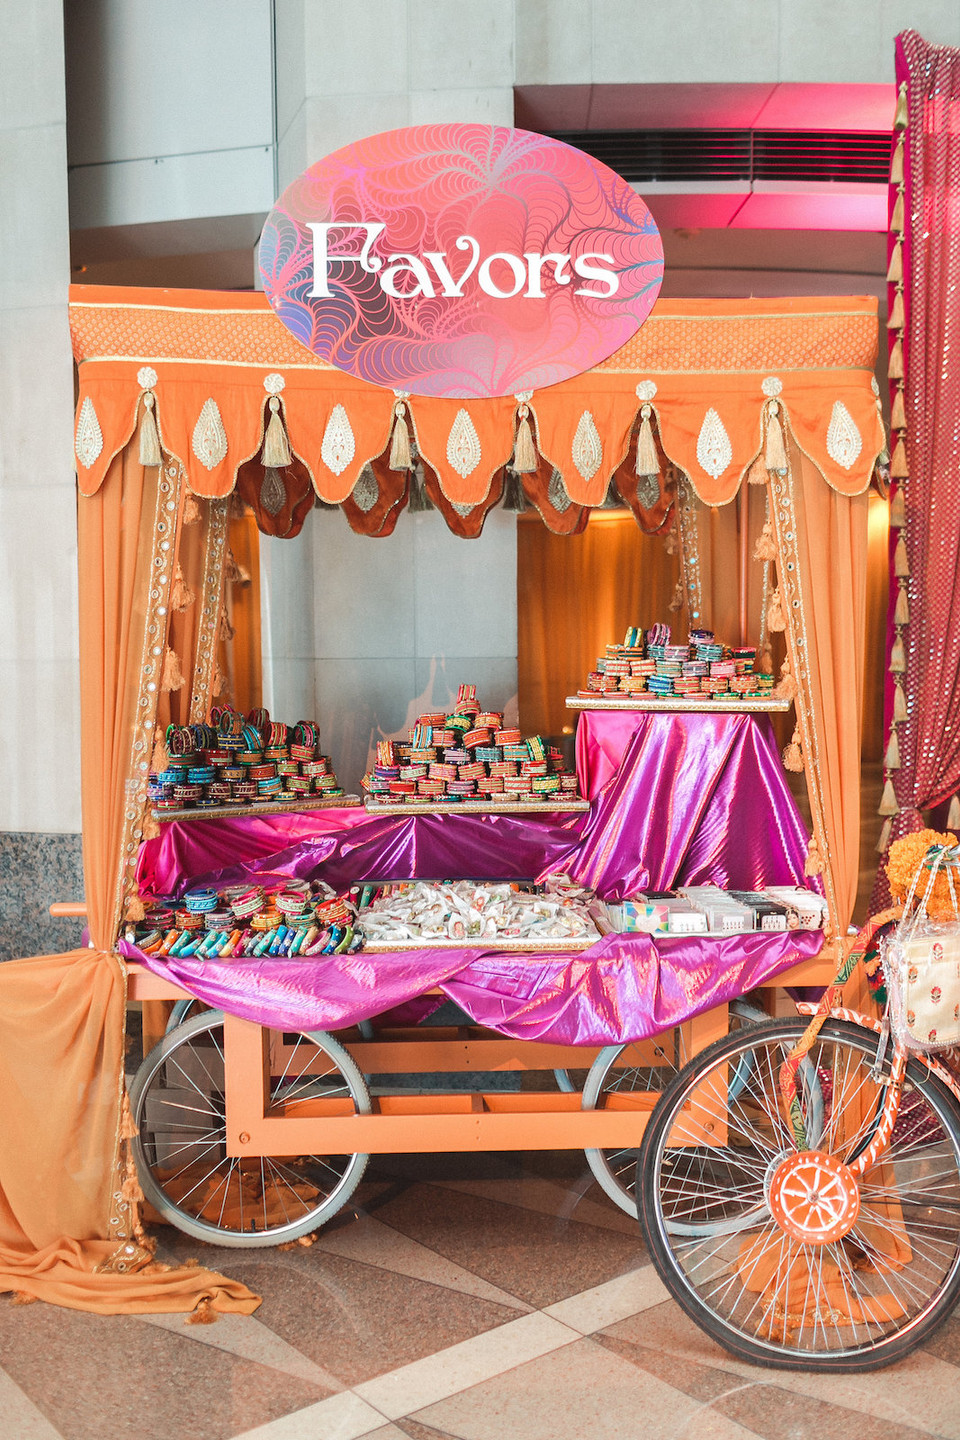 Washington DC Indian Wedding Colorful Favor Display Rickshaw CG & Co Events